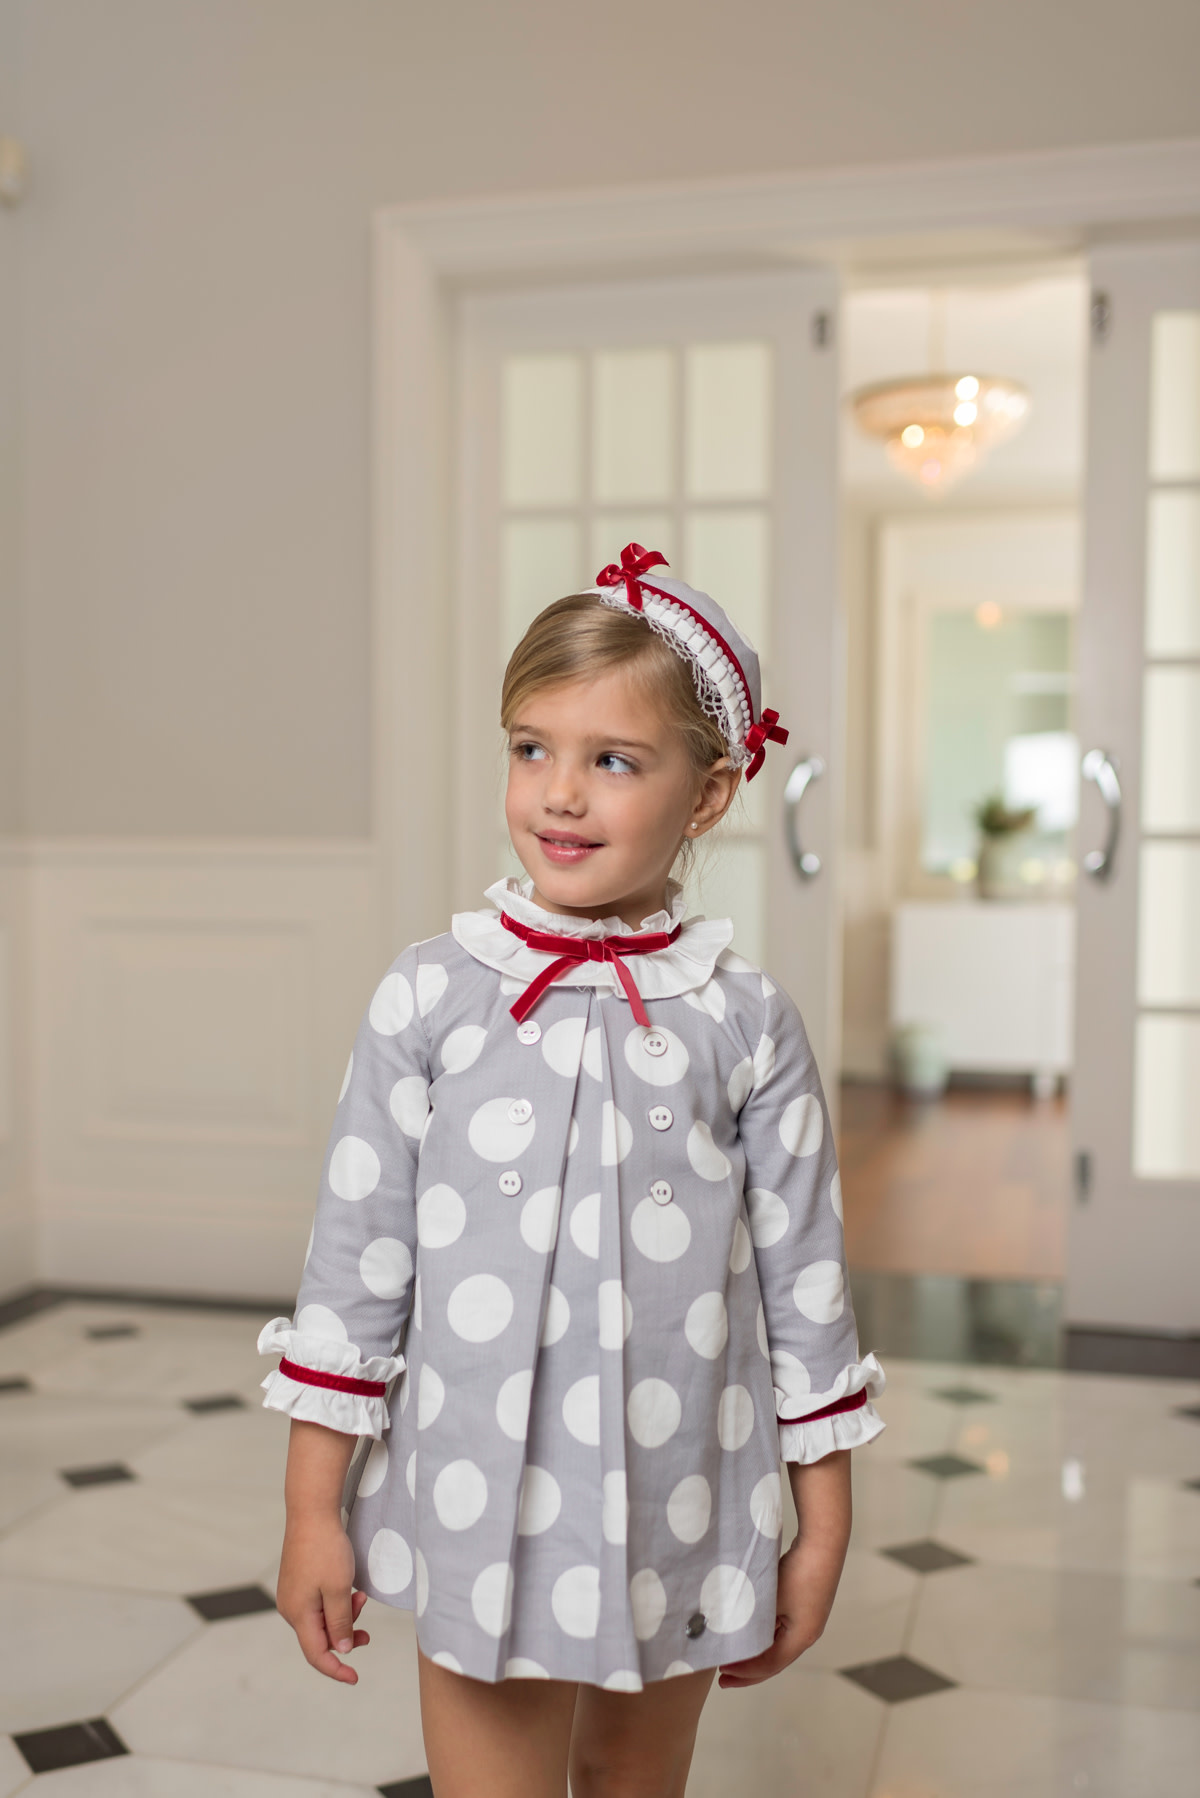 Dolce Petit Dolce Petit AW19 Grey and White Spot Dress with Red Trim Detail 2241/V